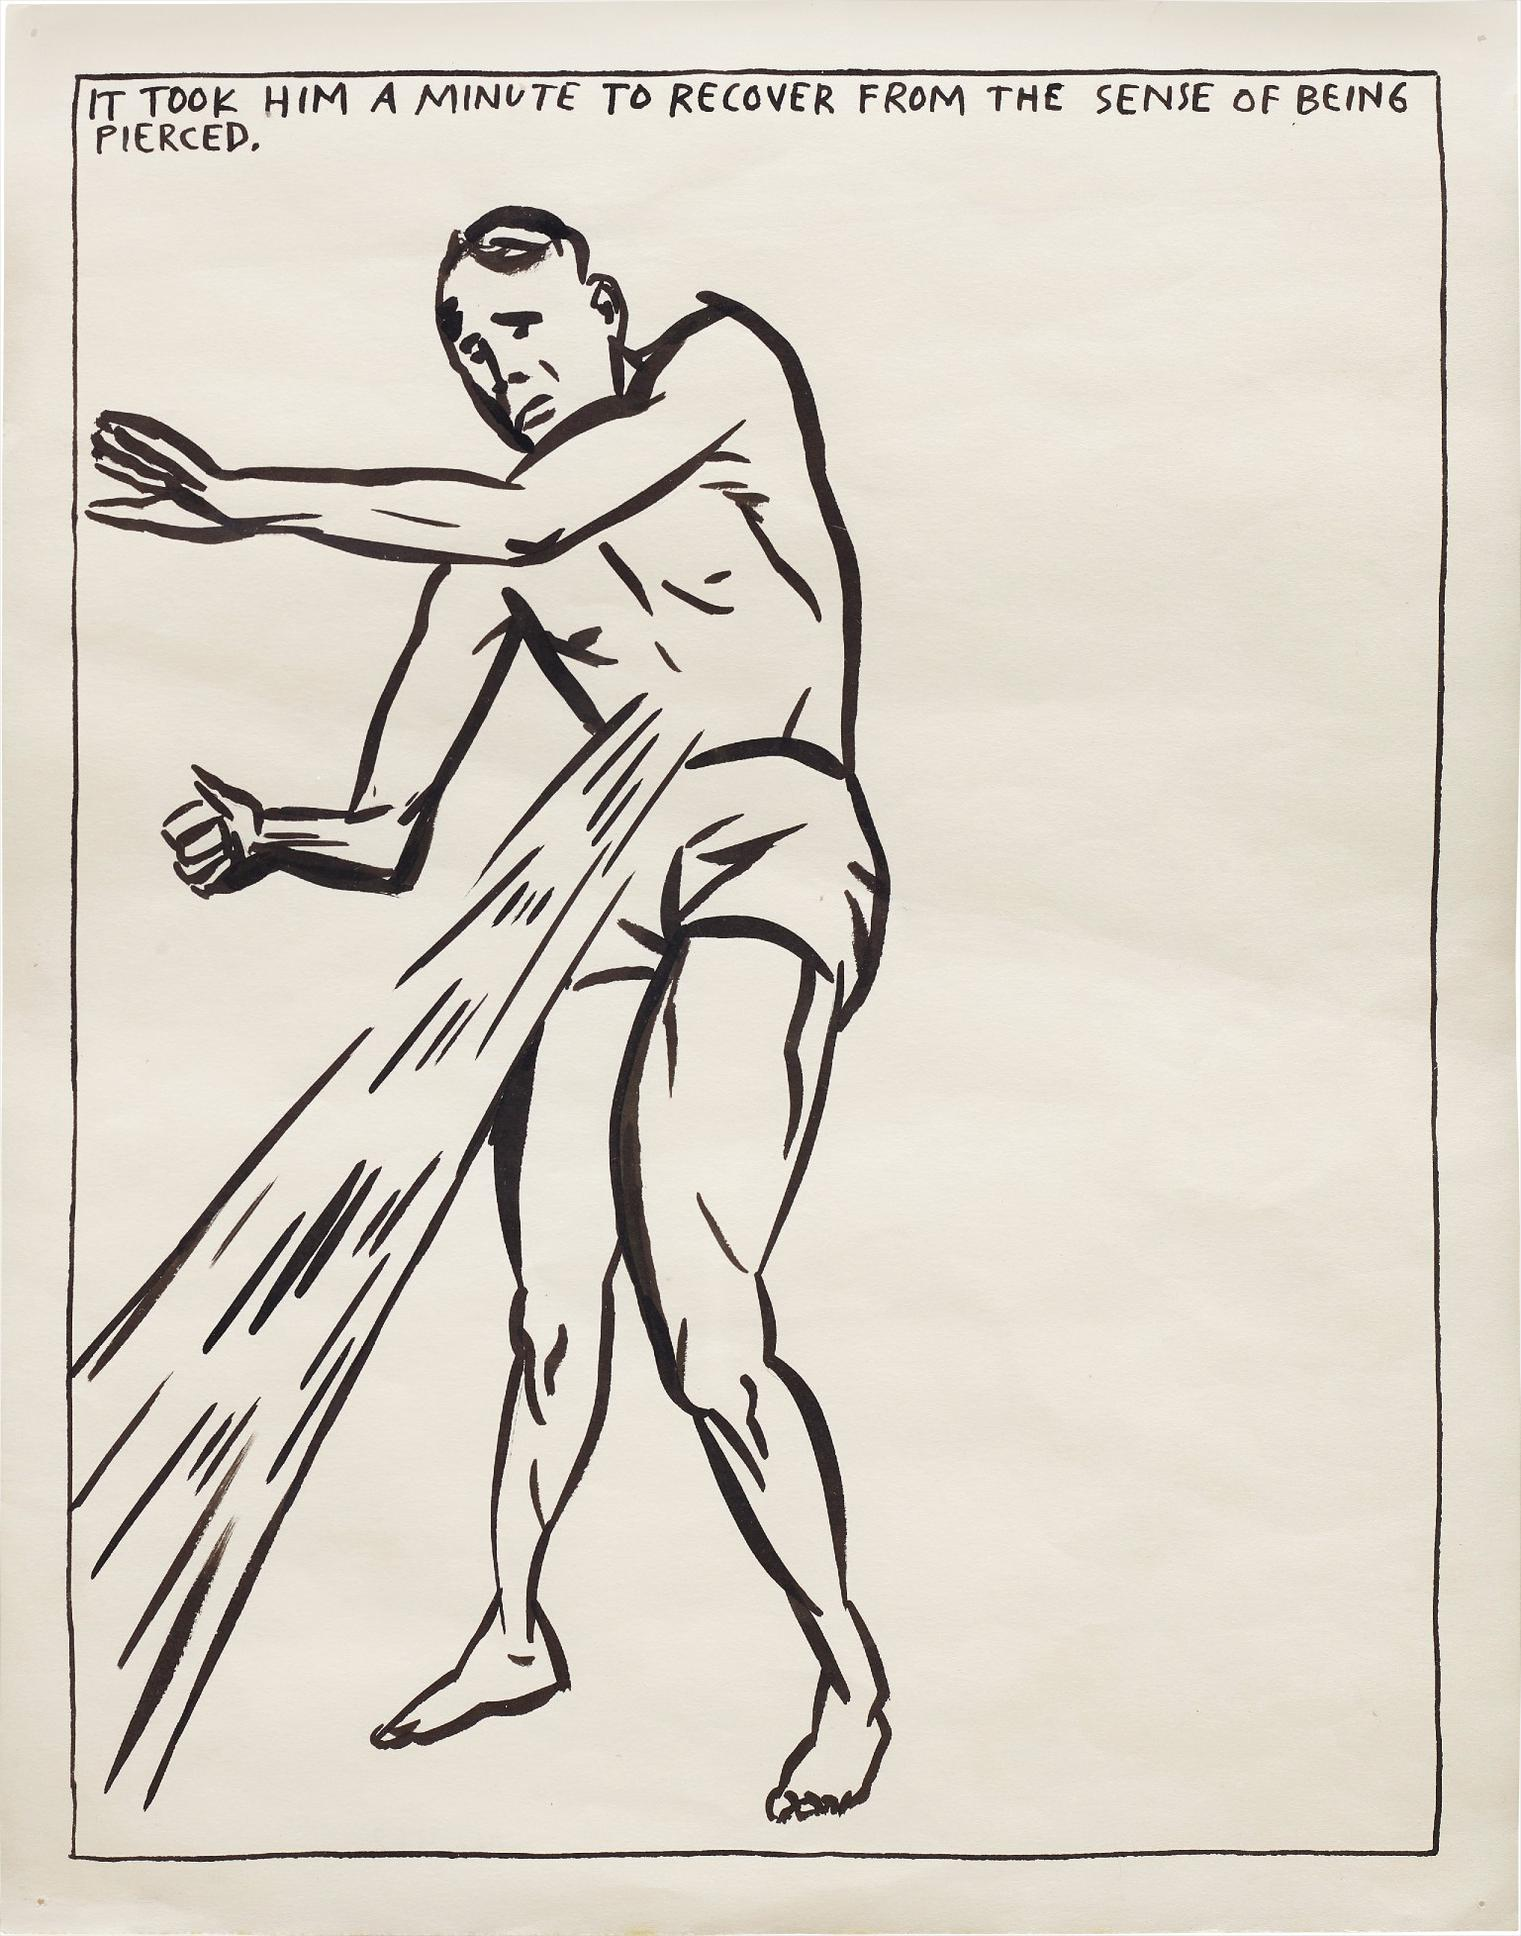 Raymond Pettibon-No Title (It Took Him A Minute To Recover From The Sense Of Being Pierced)-1987